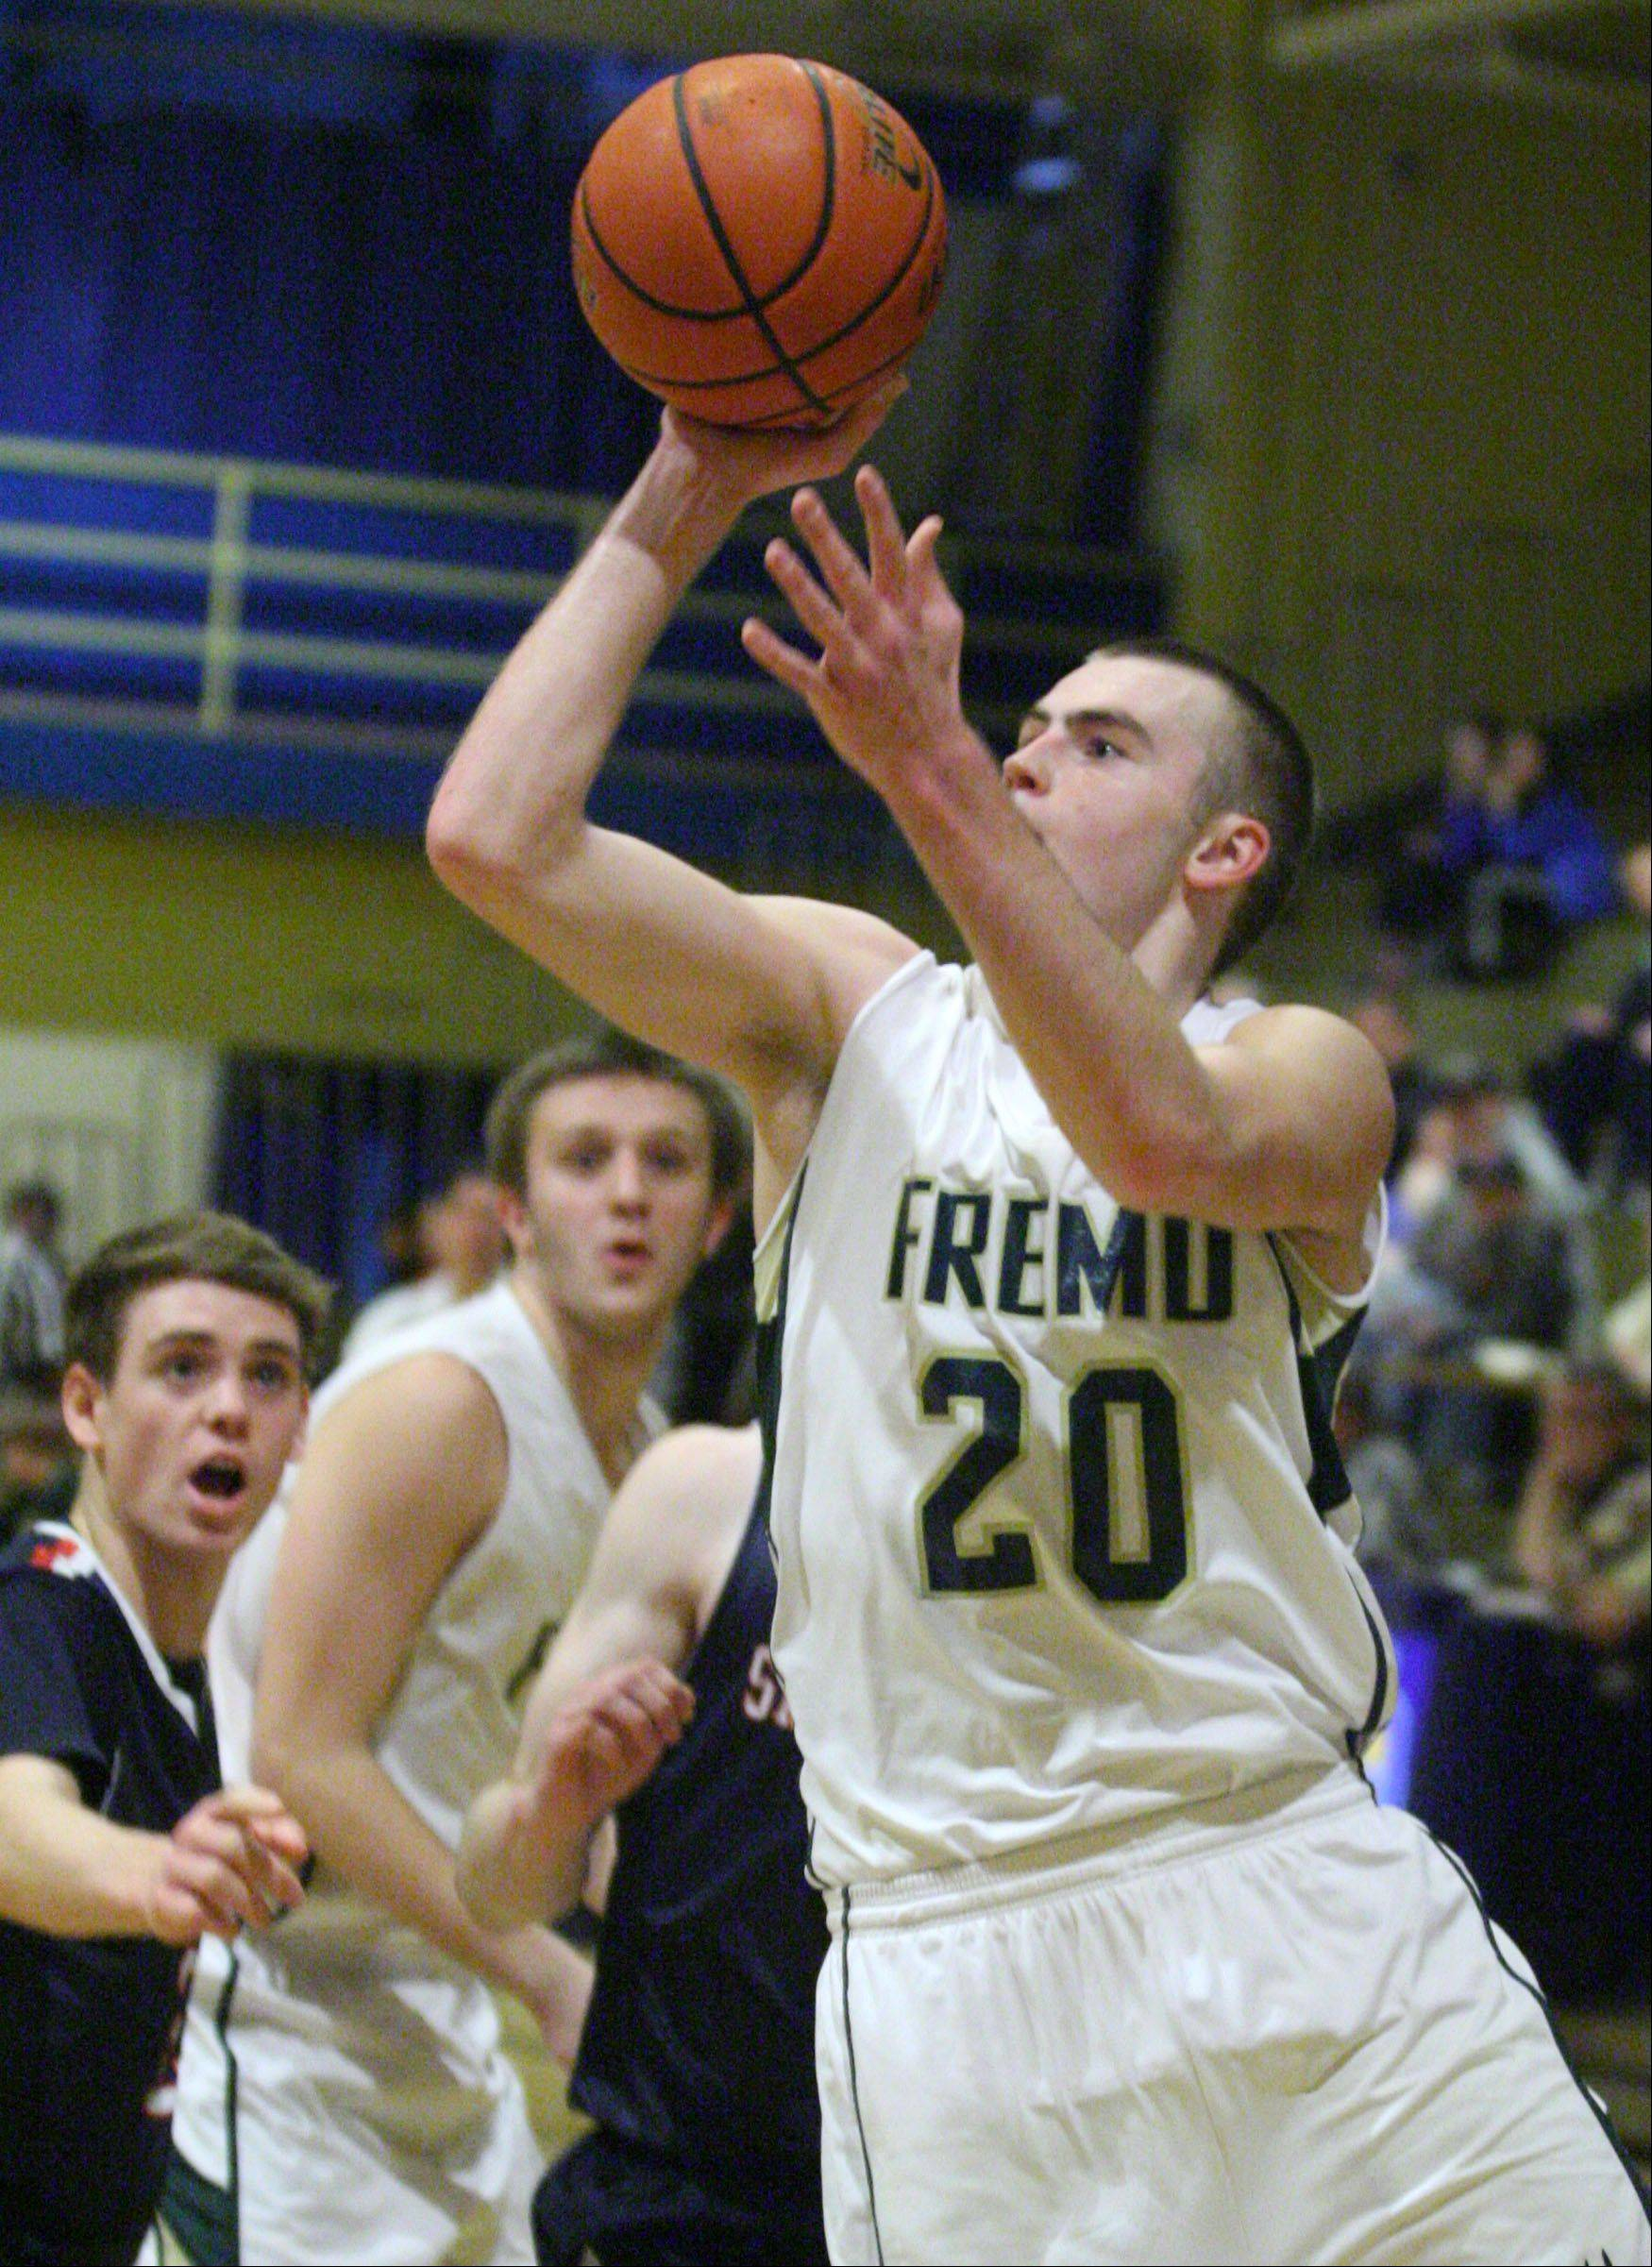 Fremd's Riley Glassmann shoots against St. Viator at the 35th annual Wheeling Wildcat Hardwood Classic on Thursday.